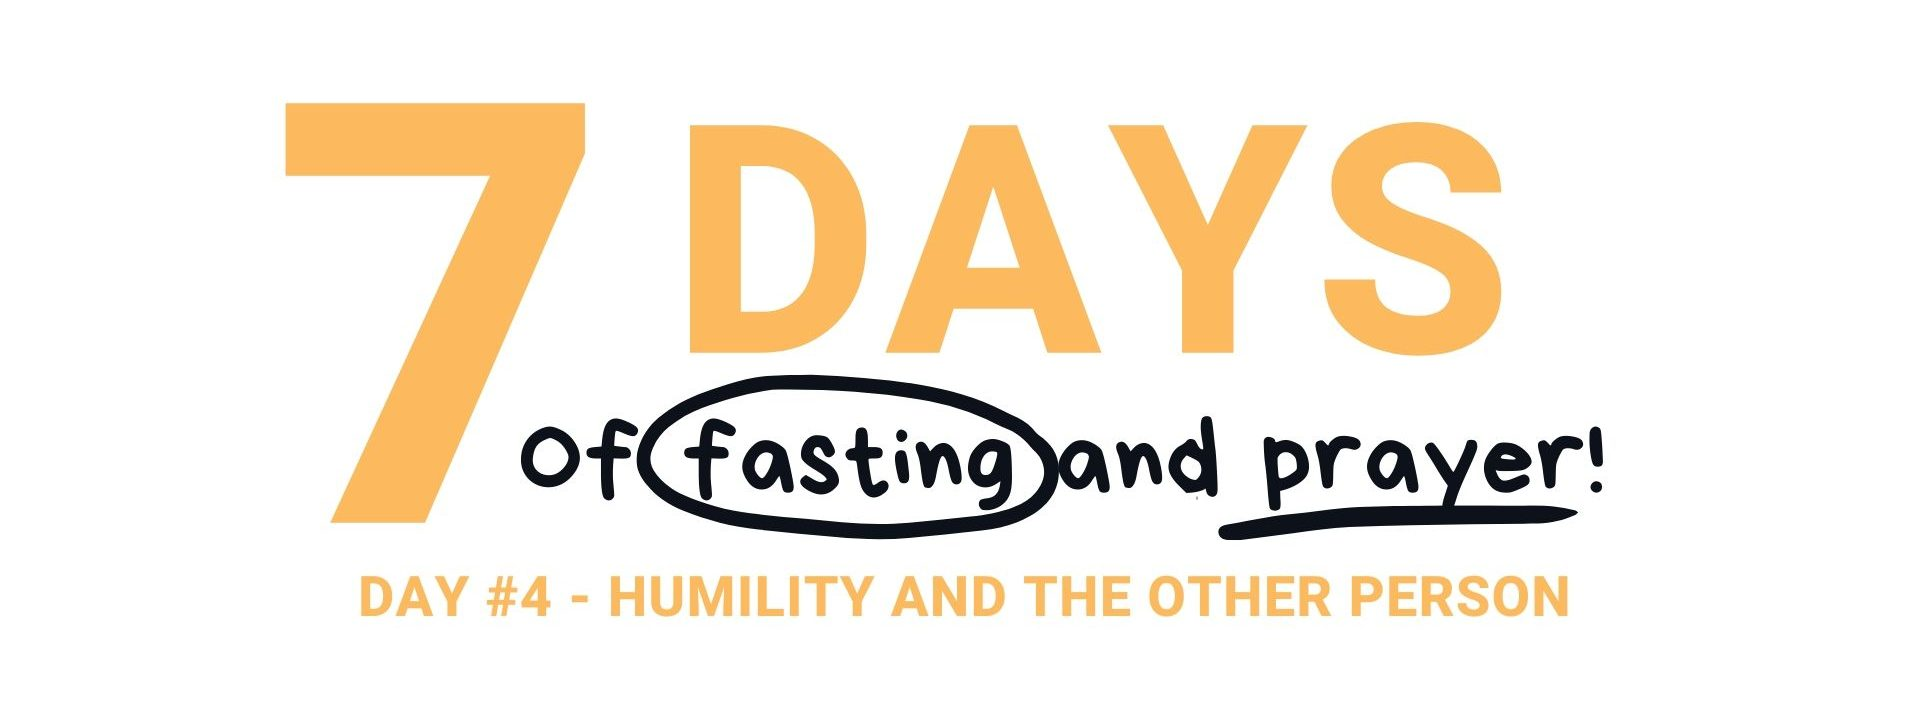 Day 4 Fast & Pray Humility and the Other Person